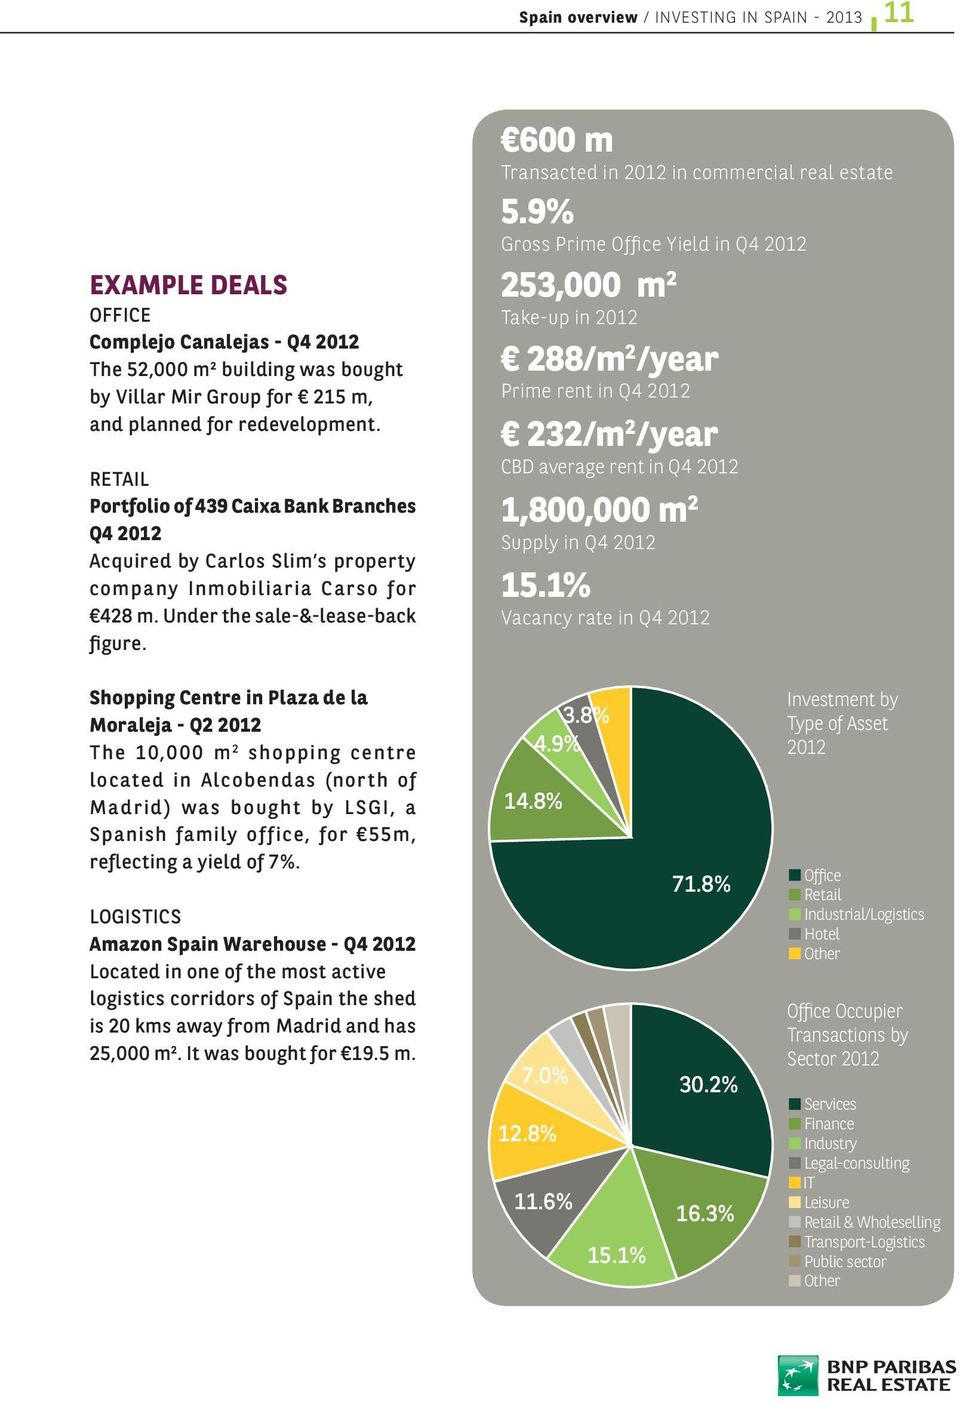 600 m Transacted in 2012 in commercial real estate 5.